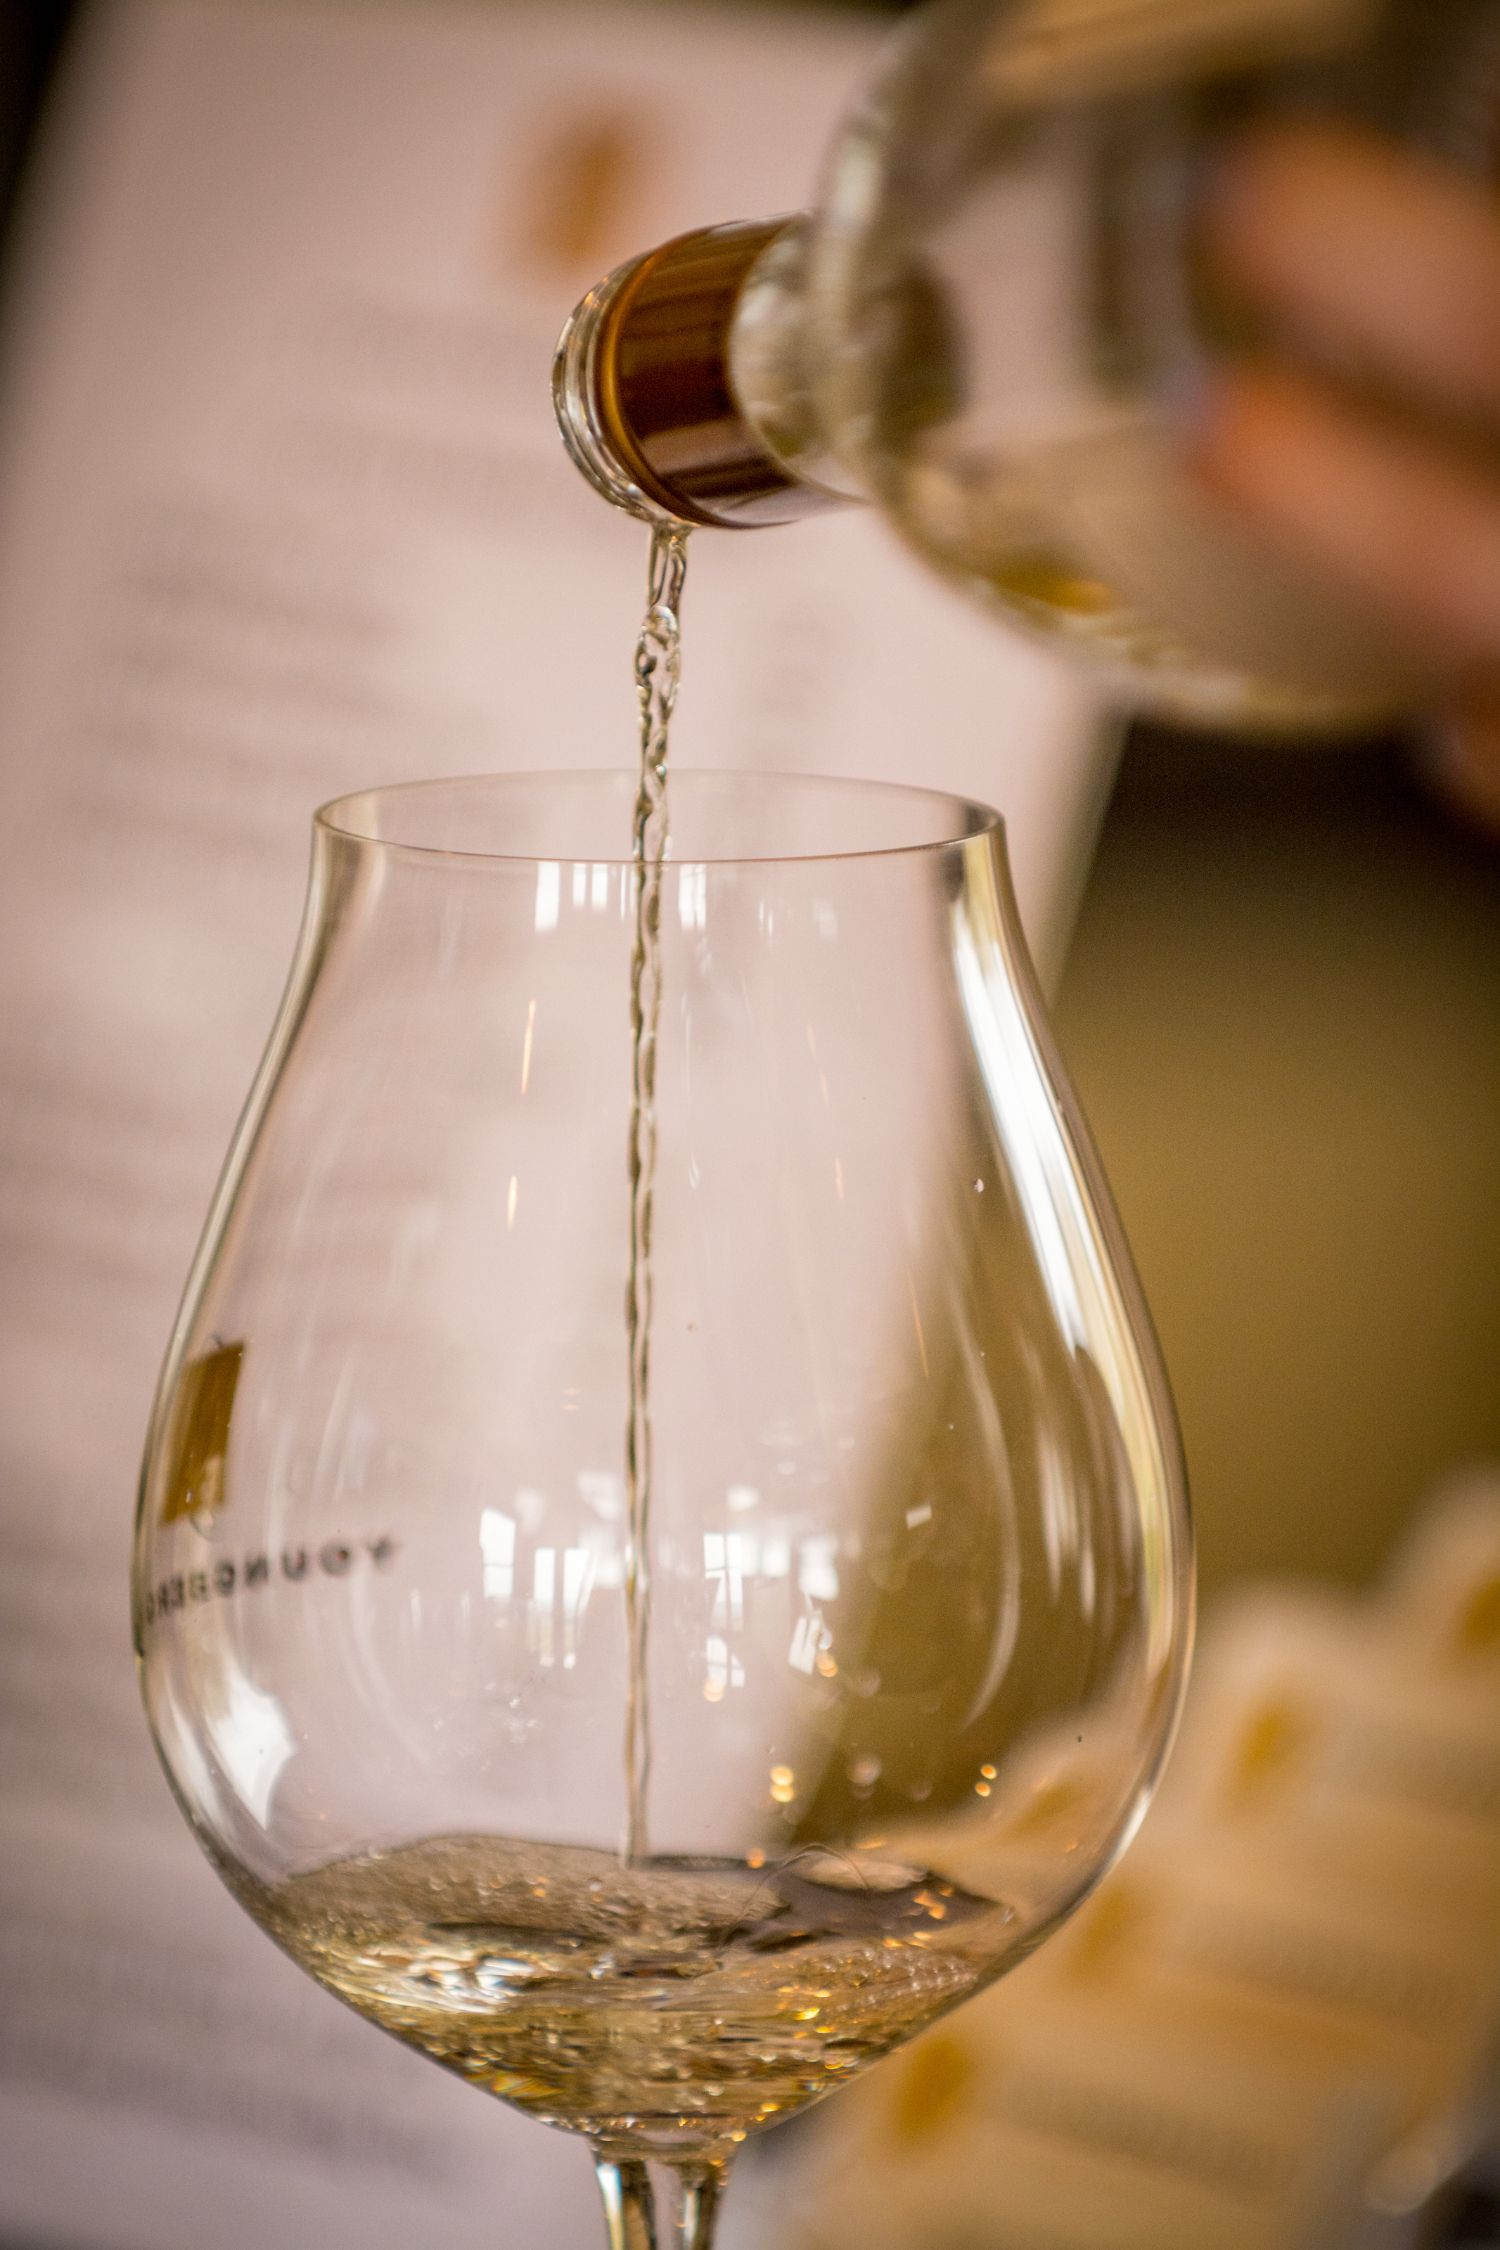 White wine being poured at Youngberg Winery in Oregon